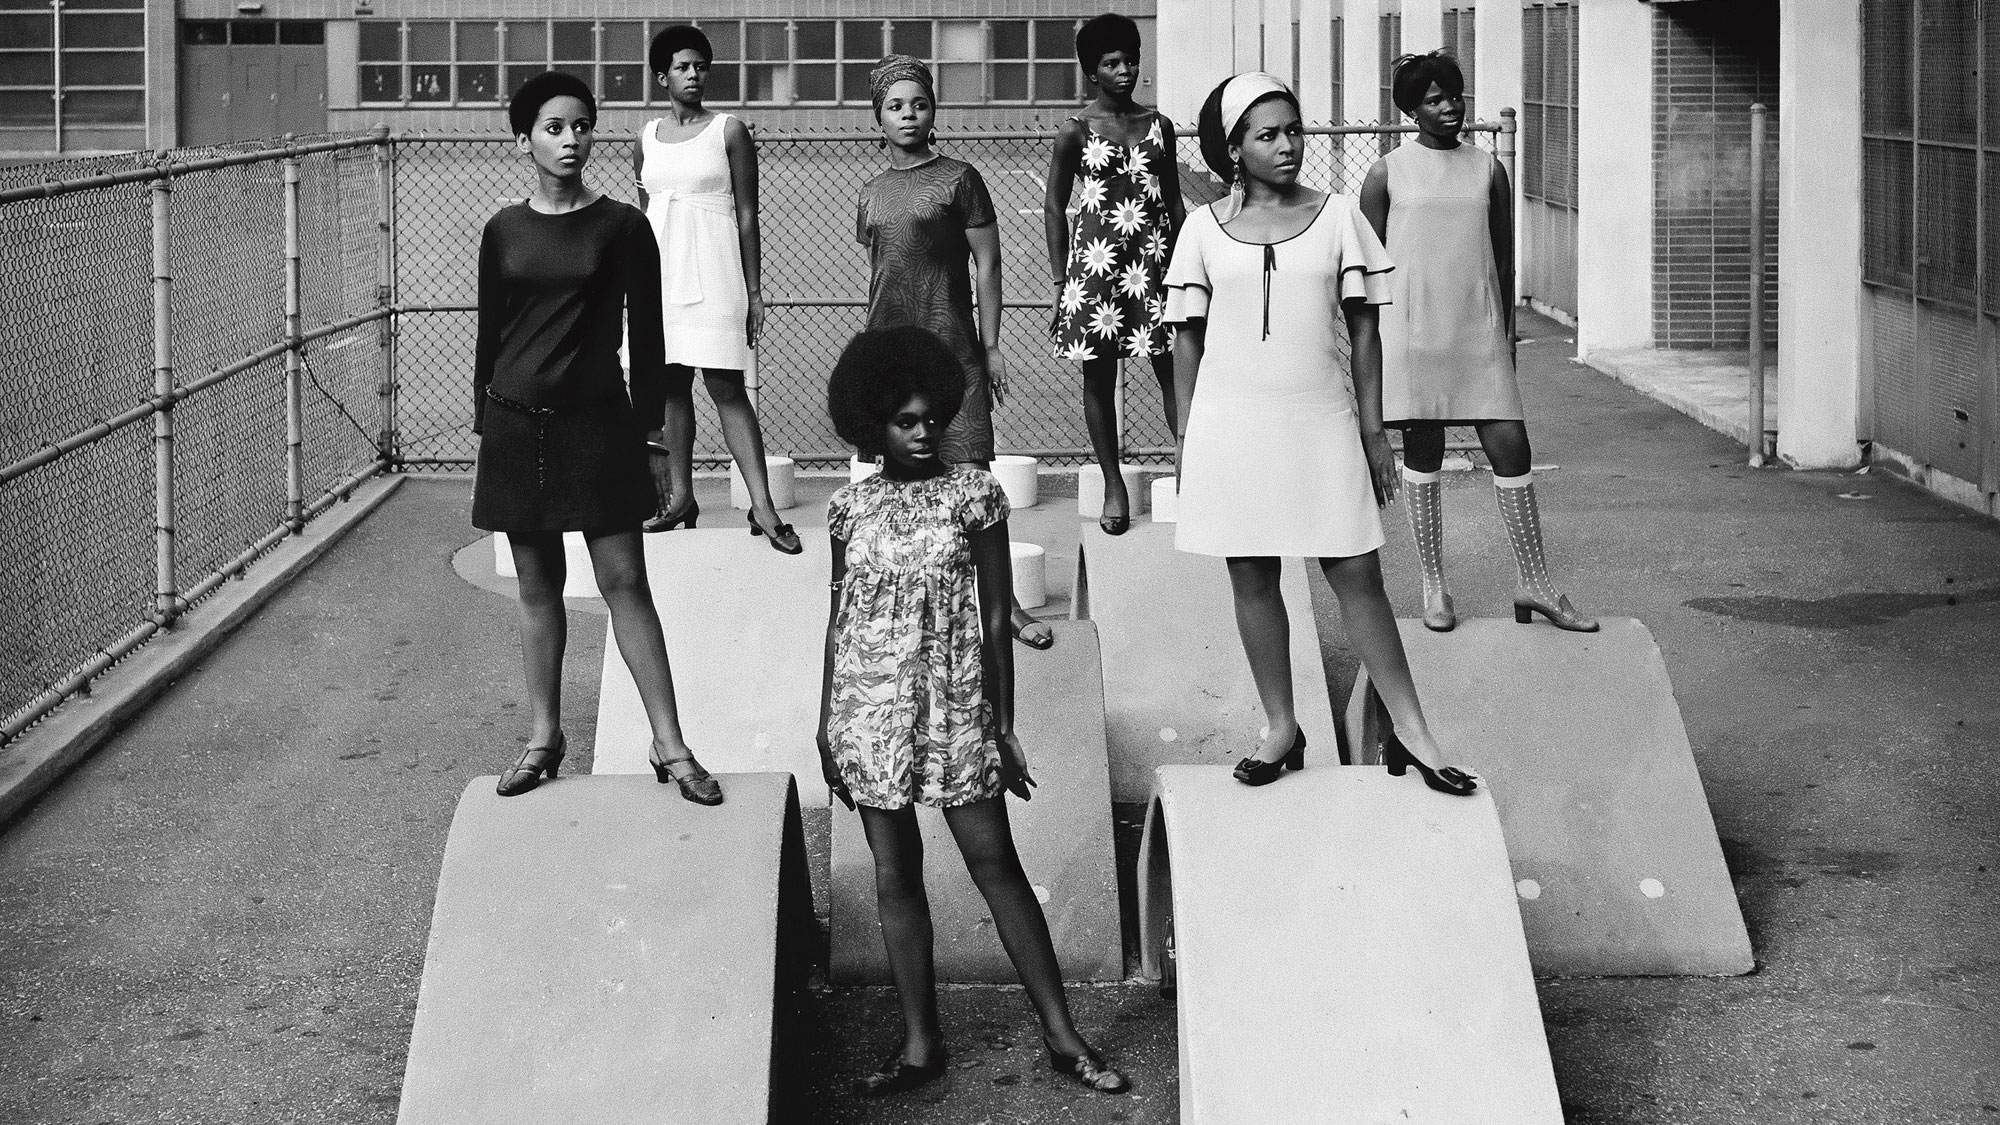 Photos That Defined 'Black is Beautiful' Can Spark Conversation Once Again